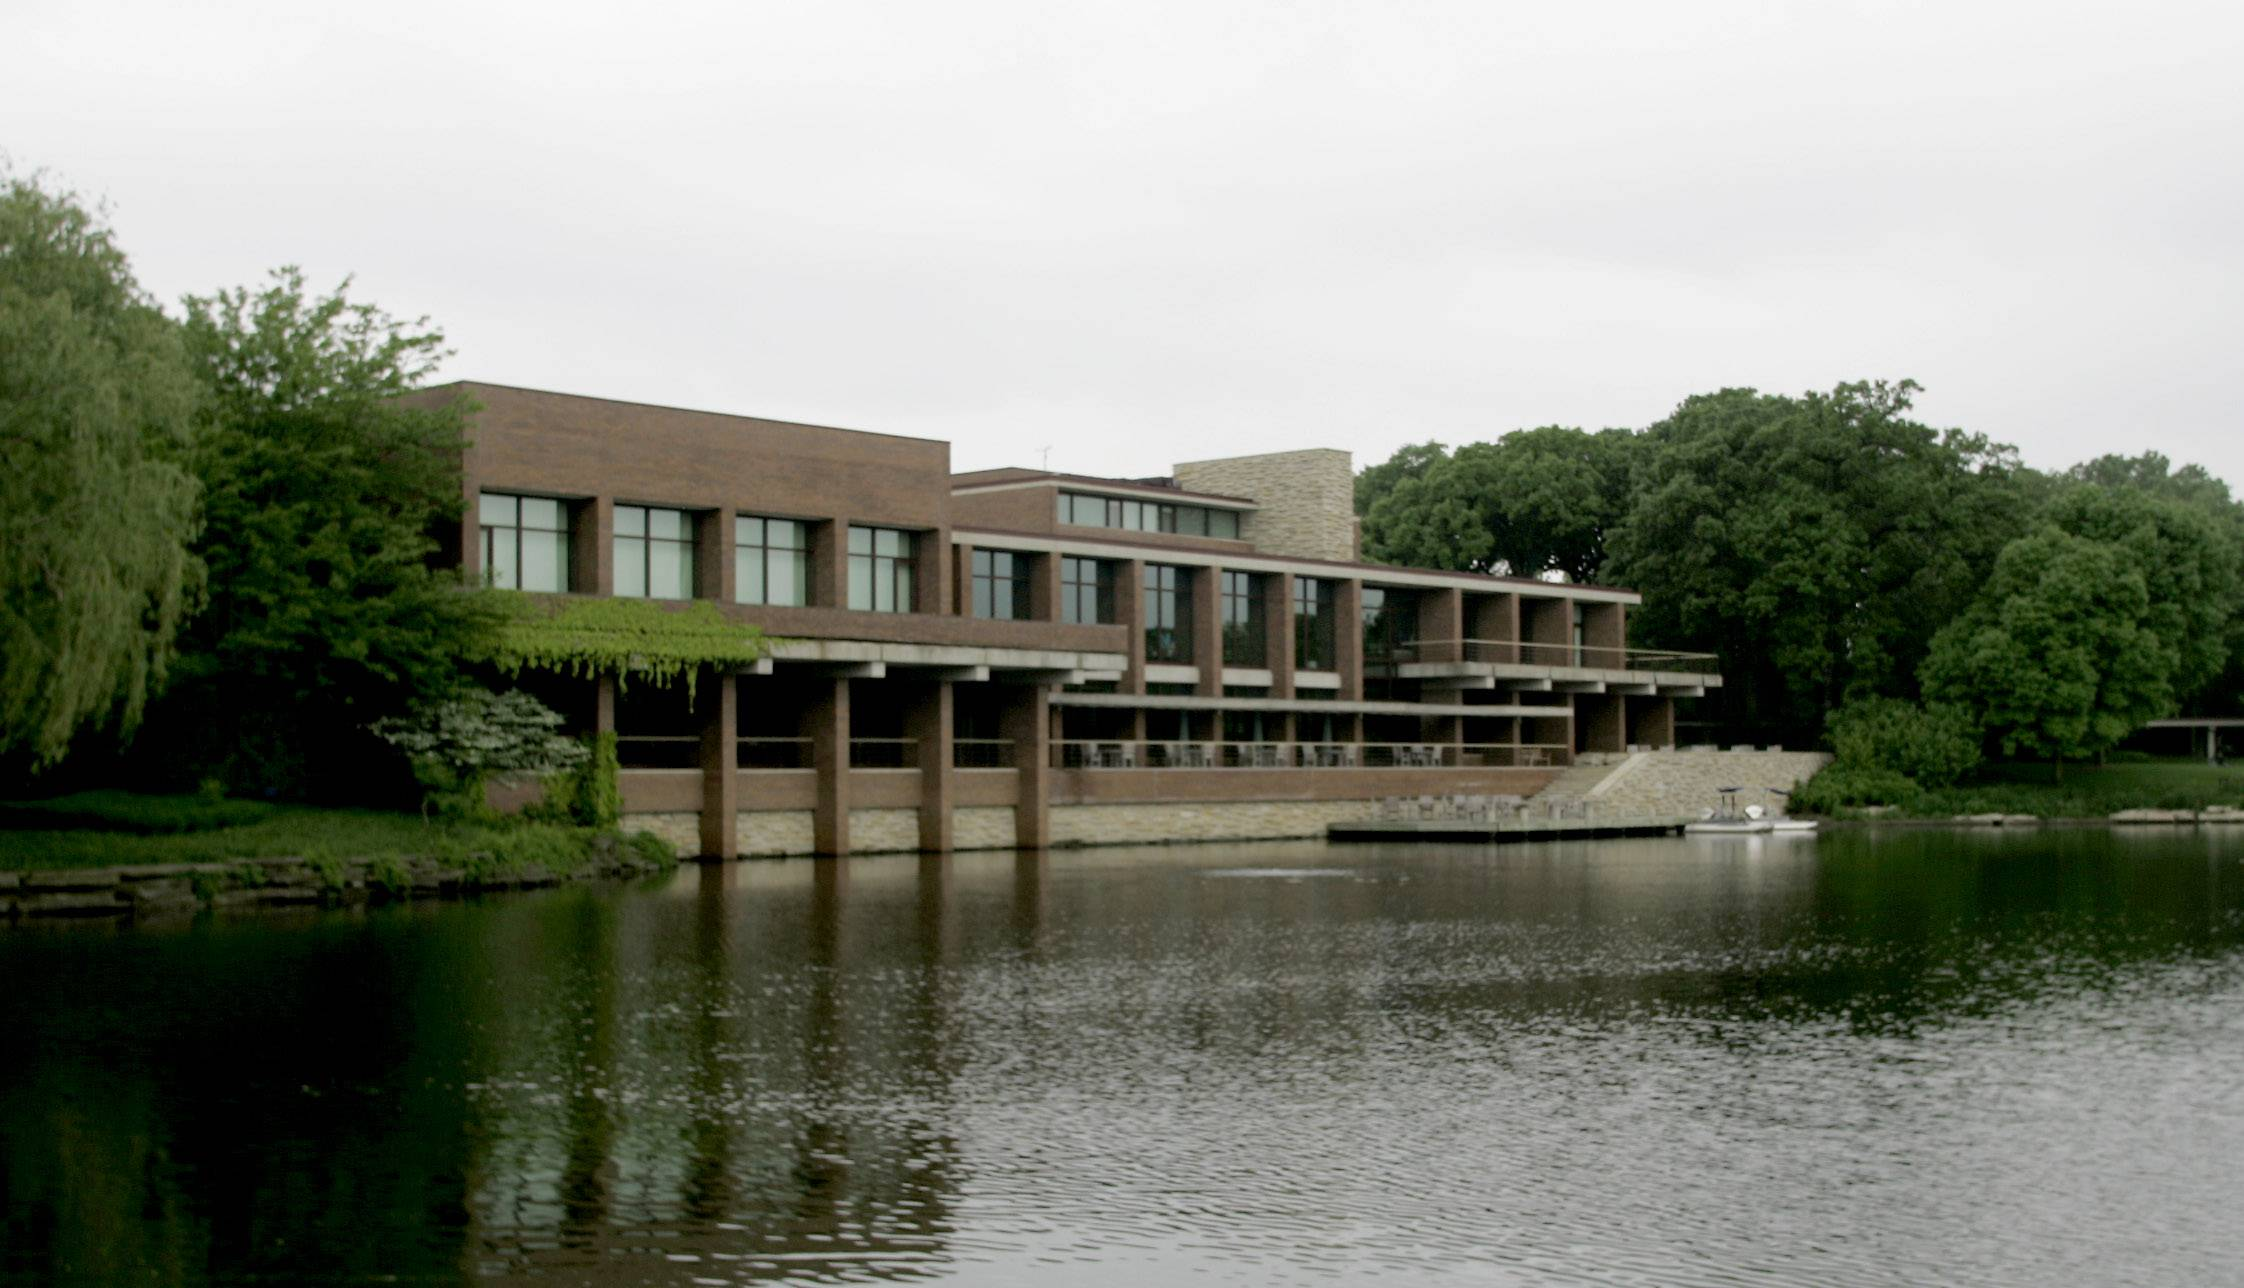 McDonald's headquarters in Oak Brook